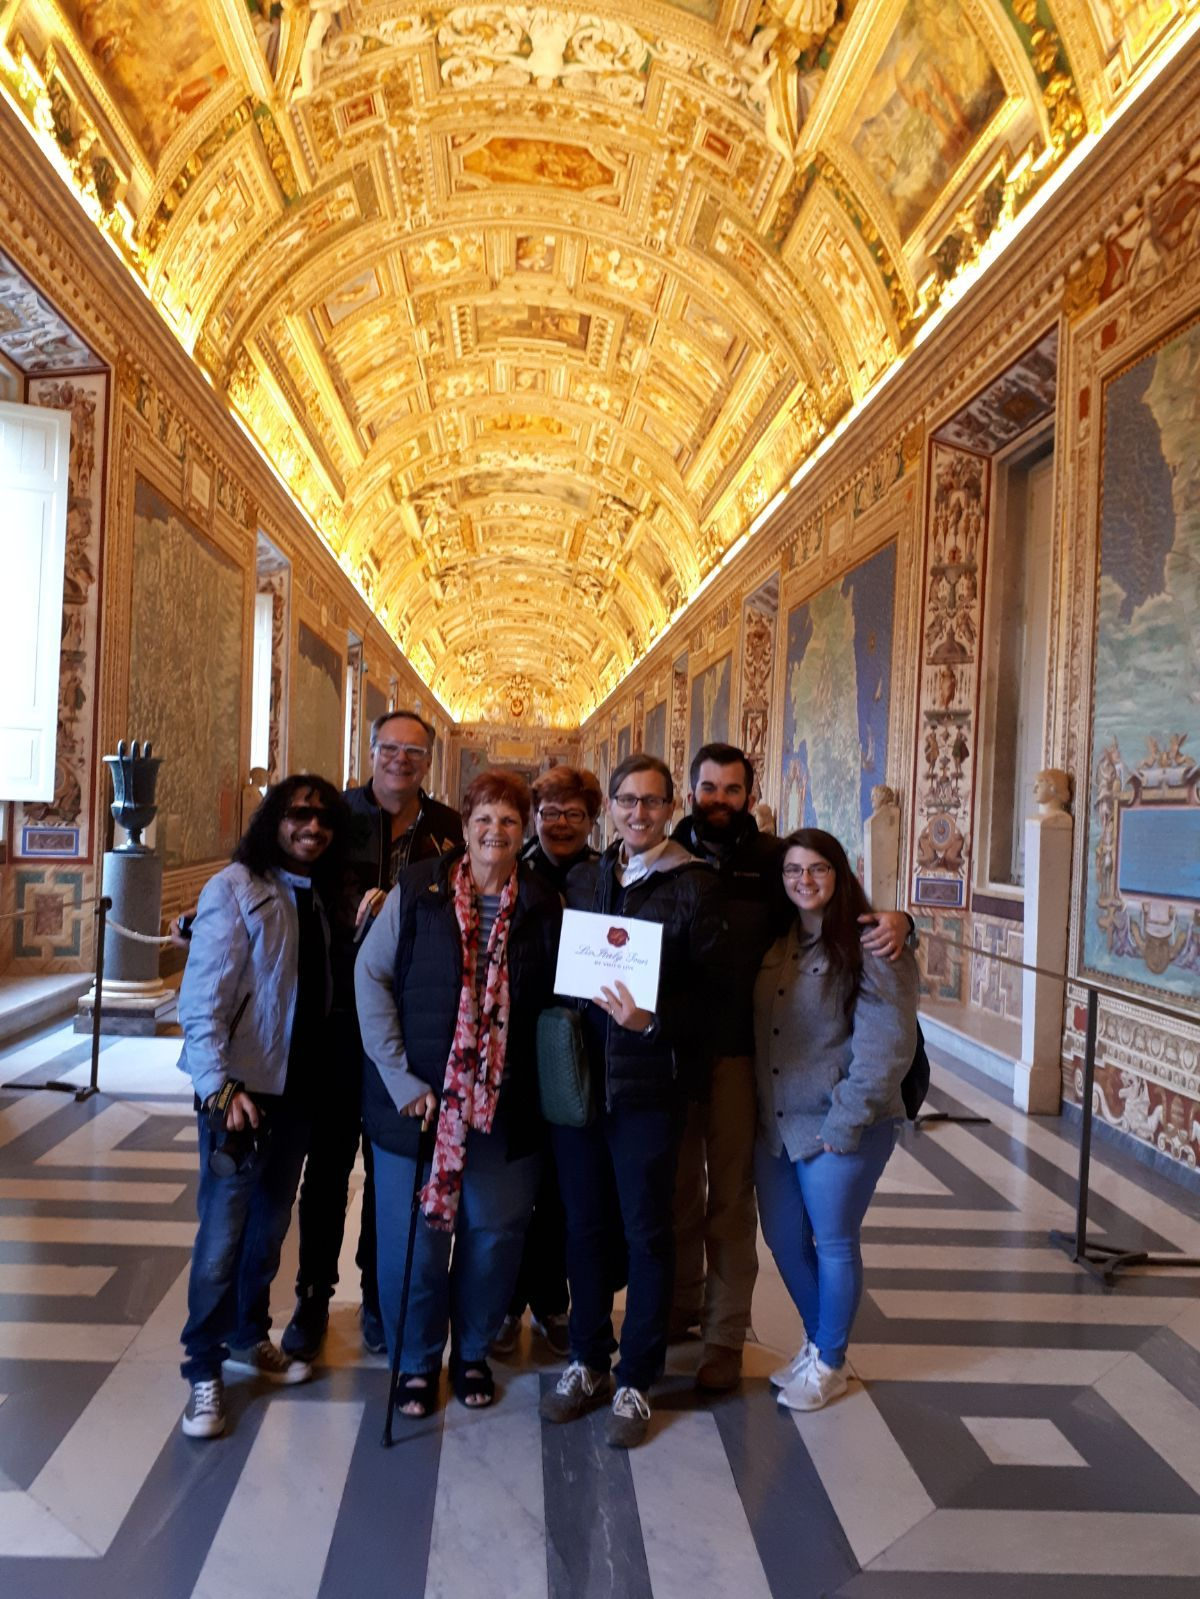 Our clients and our guide Davide in an almost empty Gallery of Maps in the Vatican Museum on November 14th! We are so happy that our clients got to skip the lines and visit the masterpieces in the museum before the busy afternoon. For more information about our Vatican Early Entrance Small Group Tour: www.livitaly.com/tour/early-entrance-vatican-small-group-tour/?src=pinterest